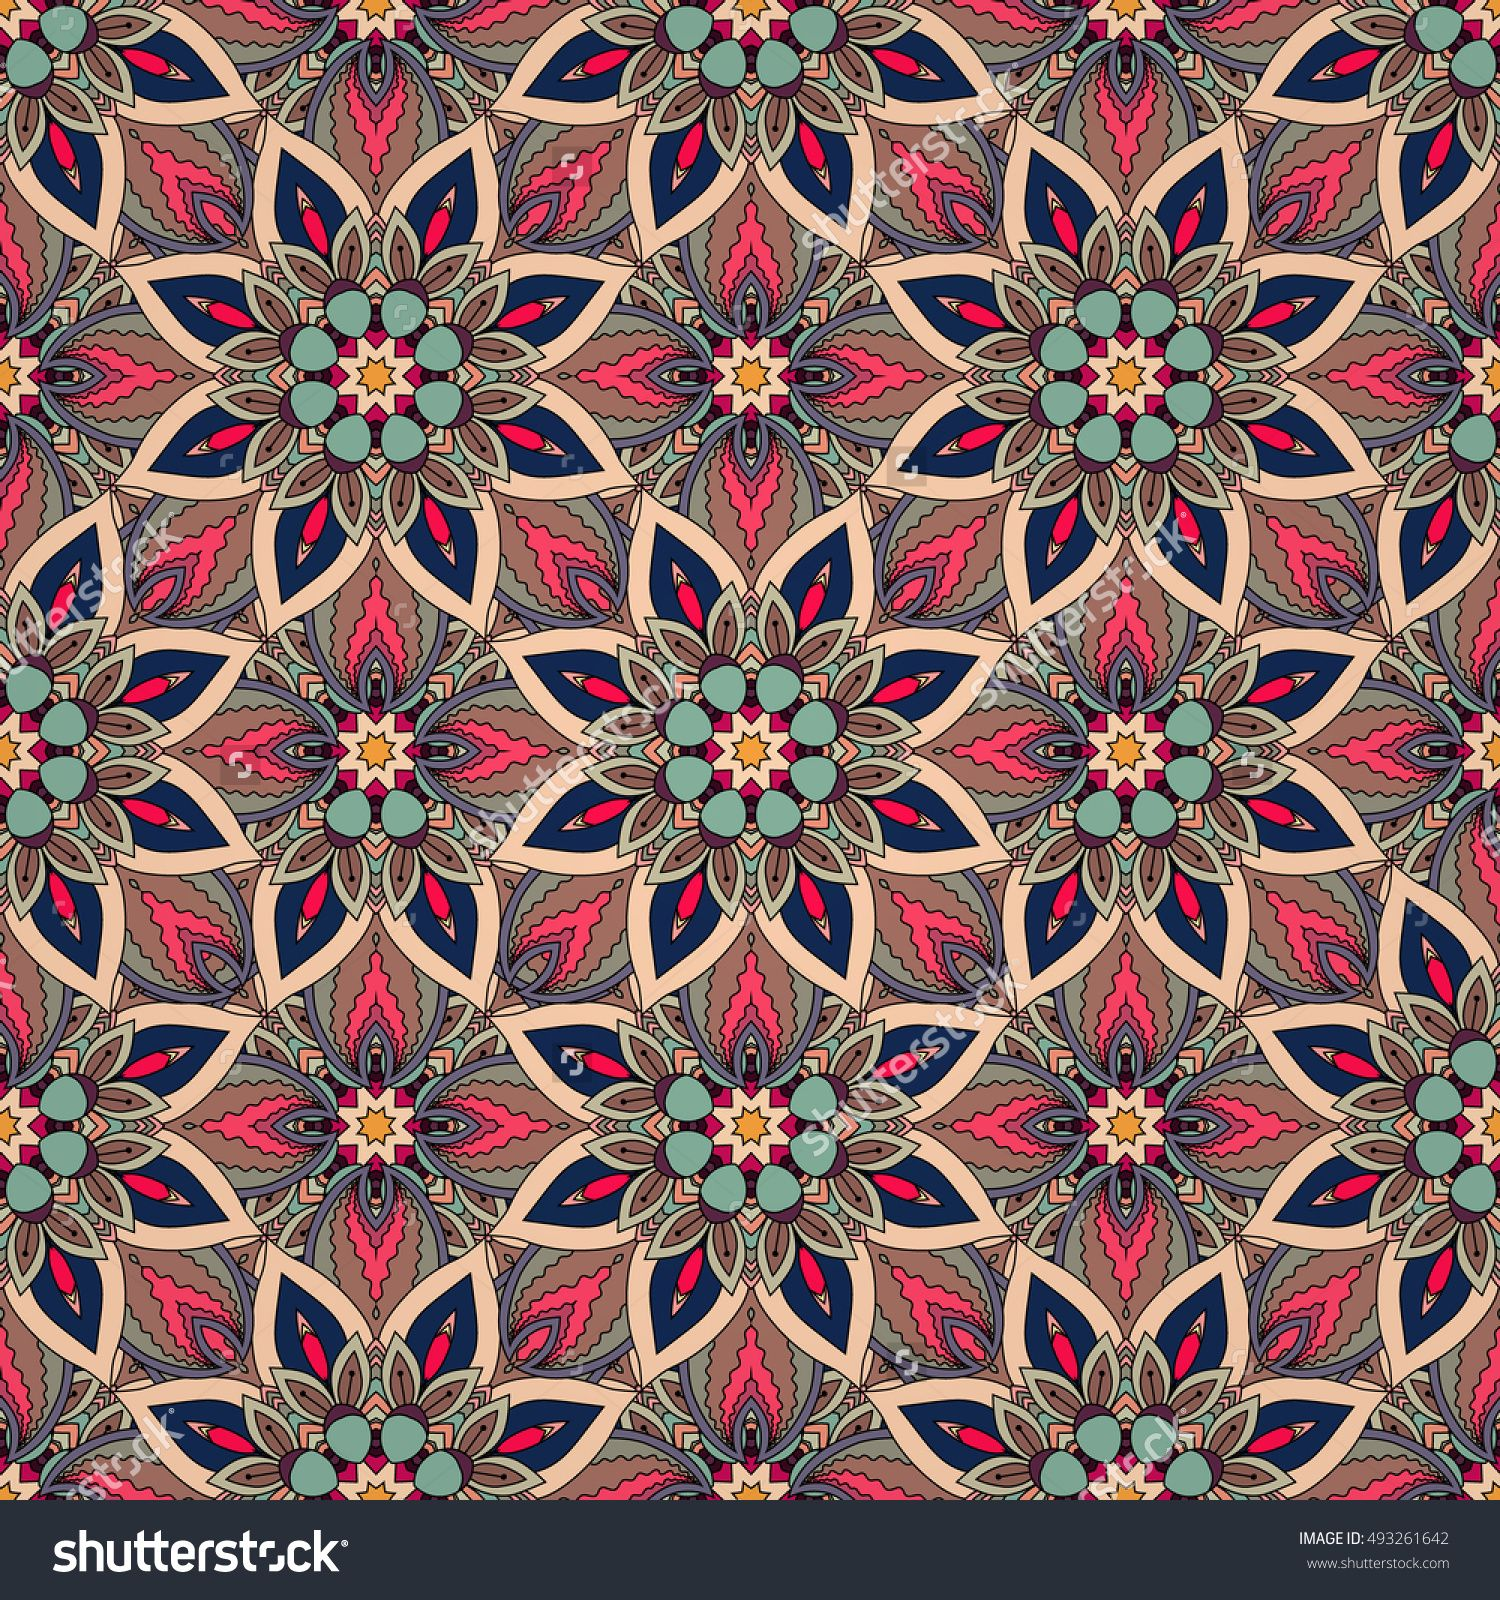 Ornate Floral Seamless Texture Endless Pattern With Vintage